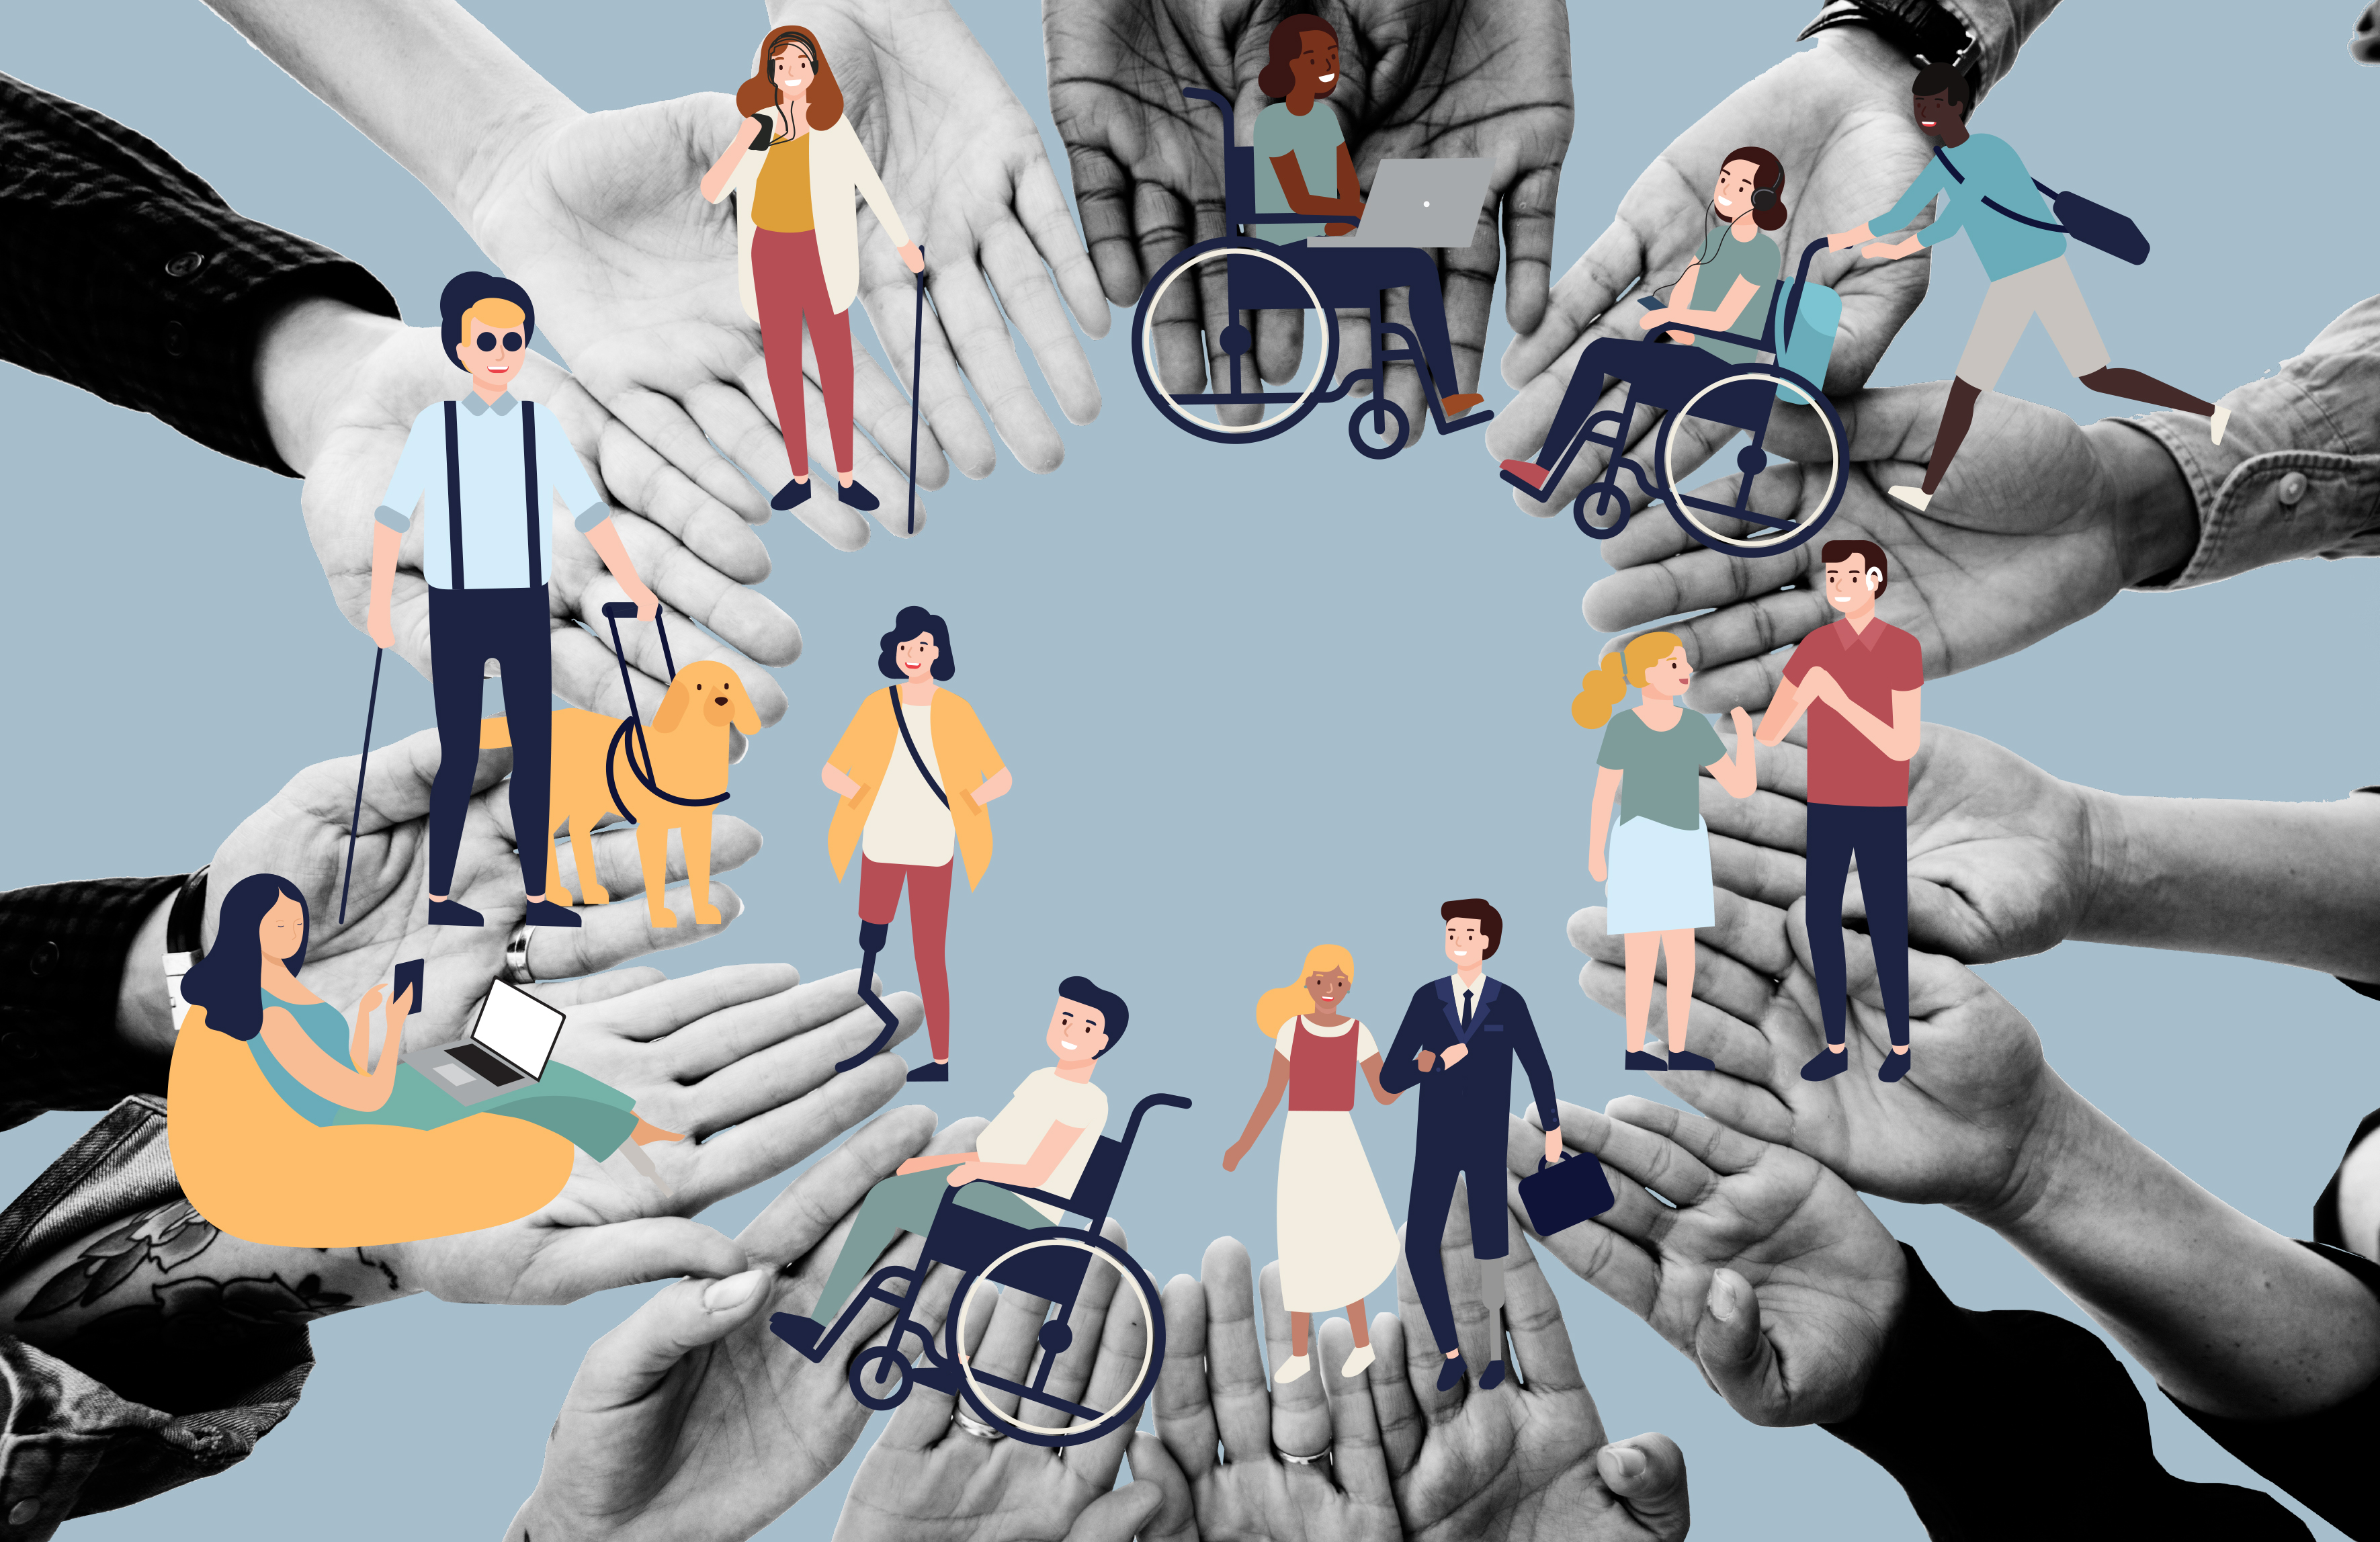 A photograph of a circle of hands with graphics of people smiling together. Some people are using wheelchairs, others have guide dogs and hearing aids.